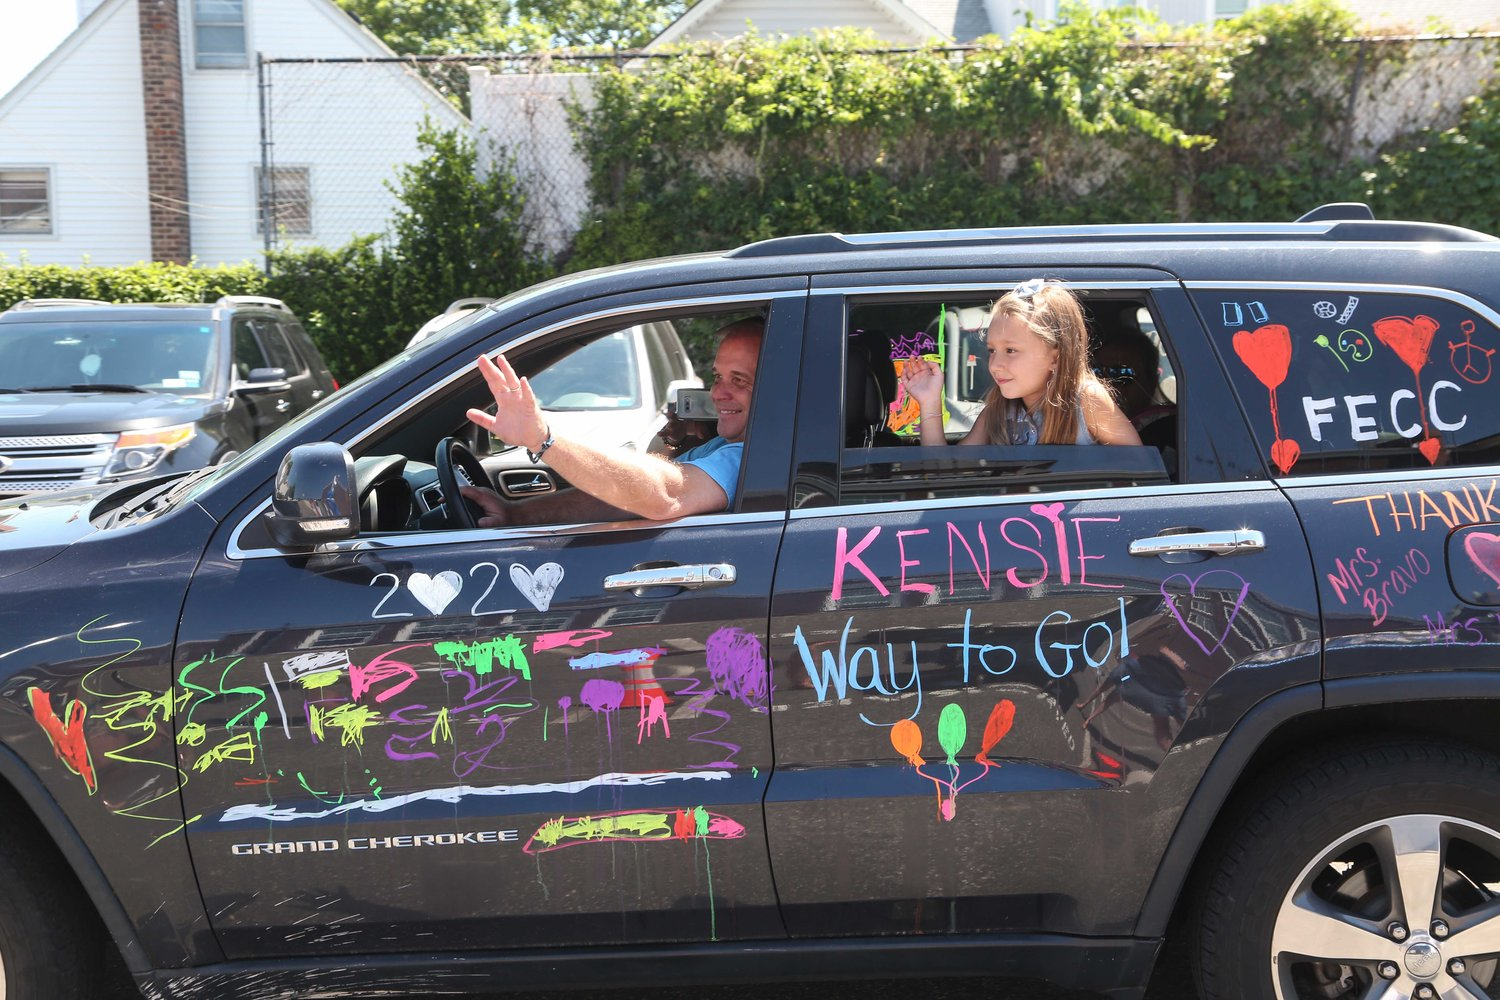 Kensie and her father waved to the FECC faculty as they drive through.